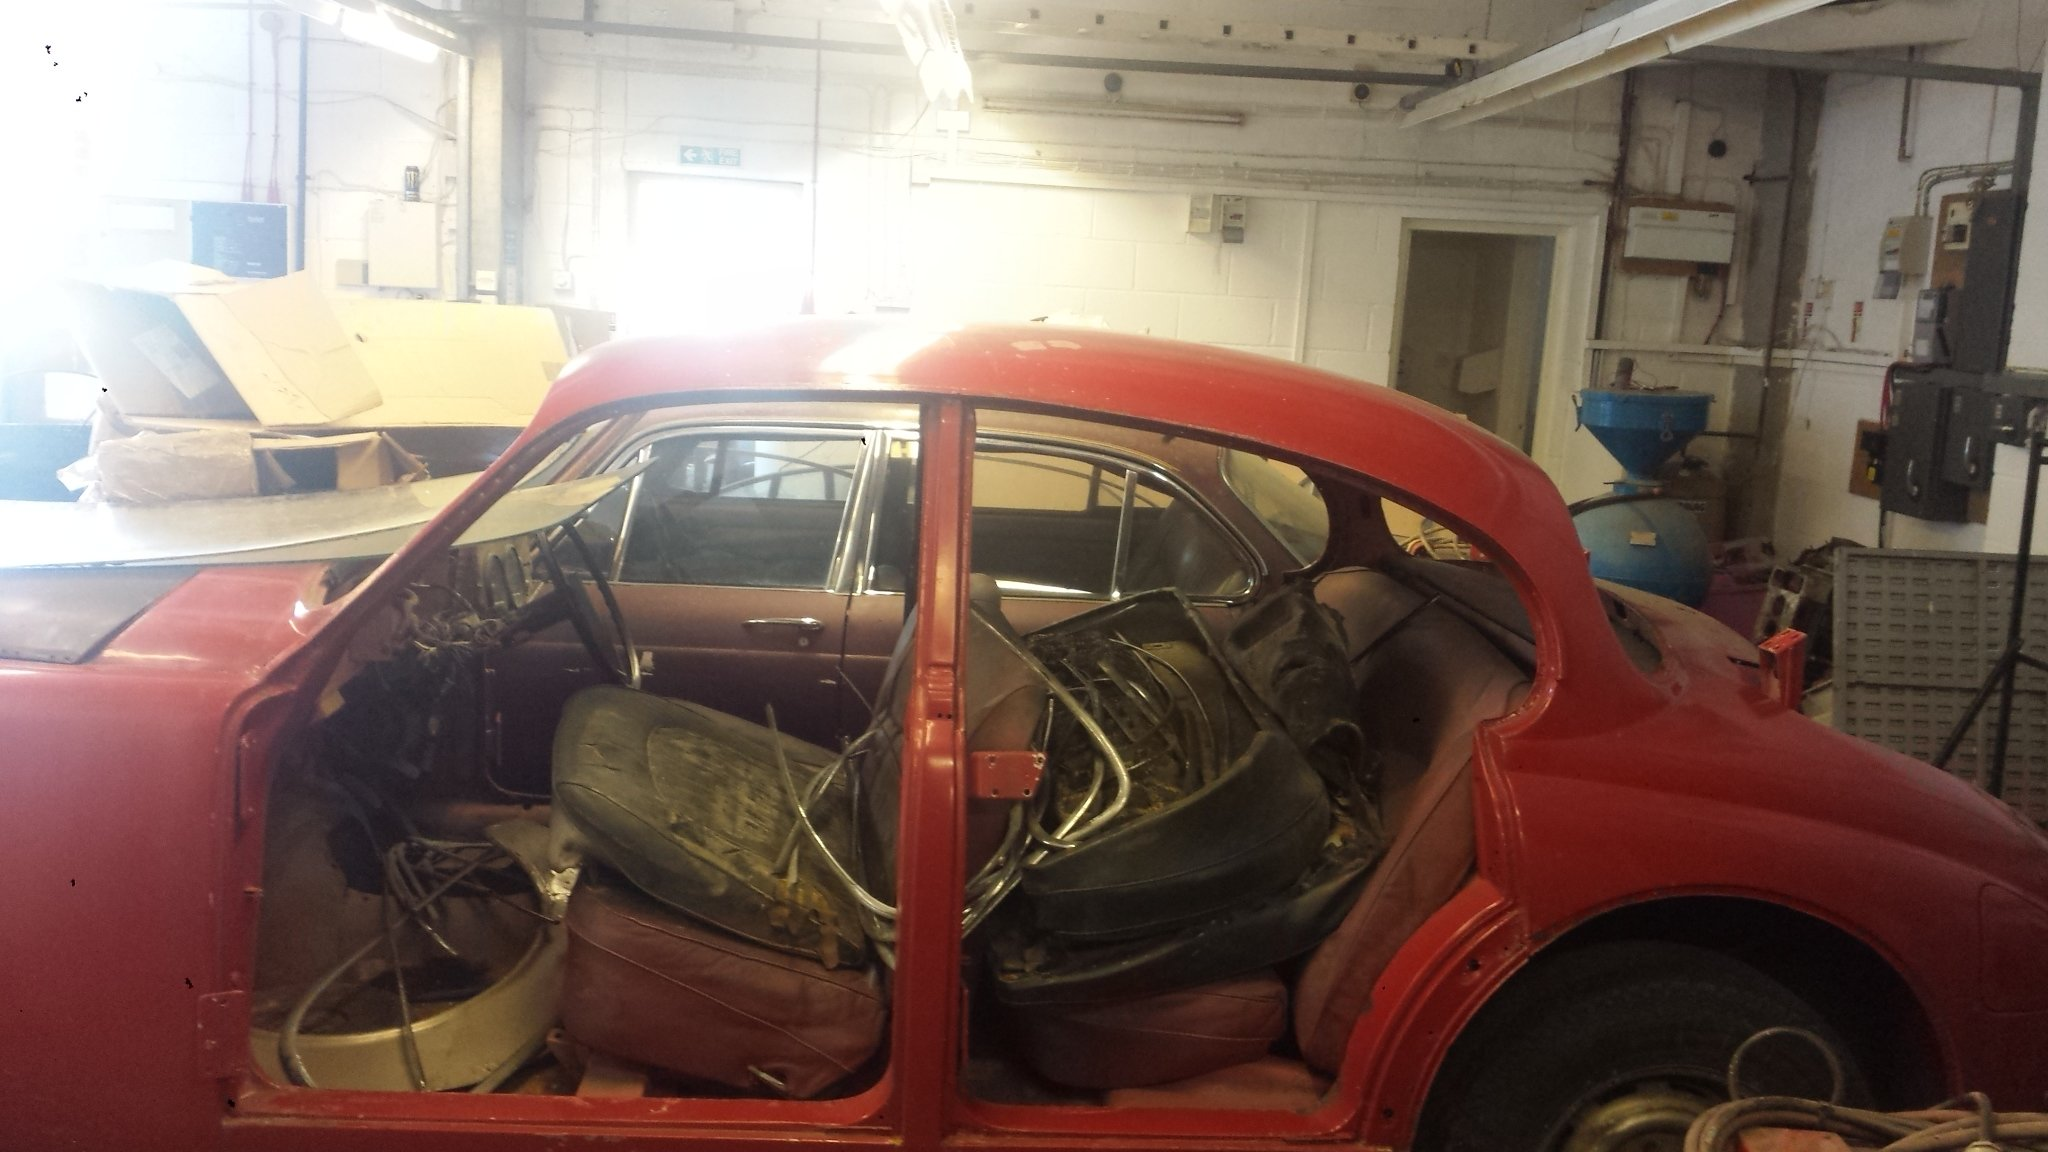 1967 JAGUAR 34 MK2 RESTORATION PROJECT For Sale (picture 2 of 6)